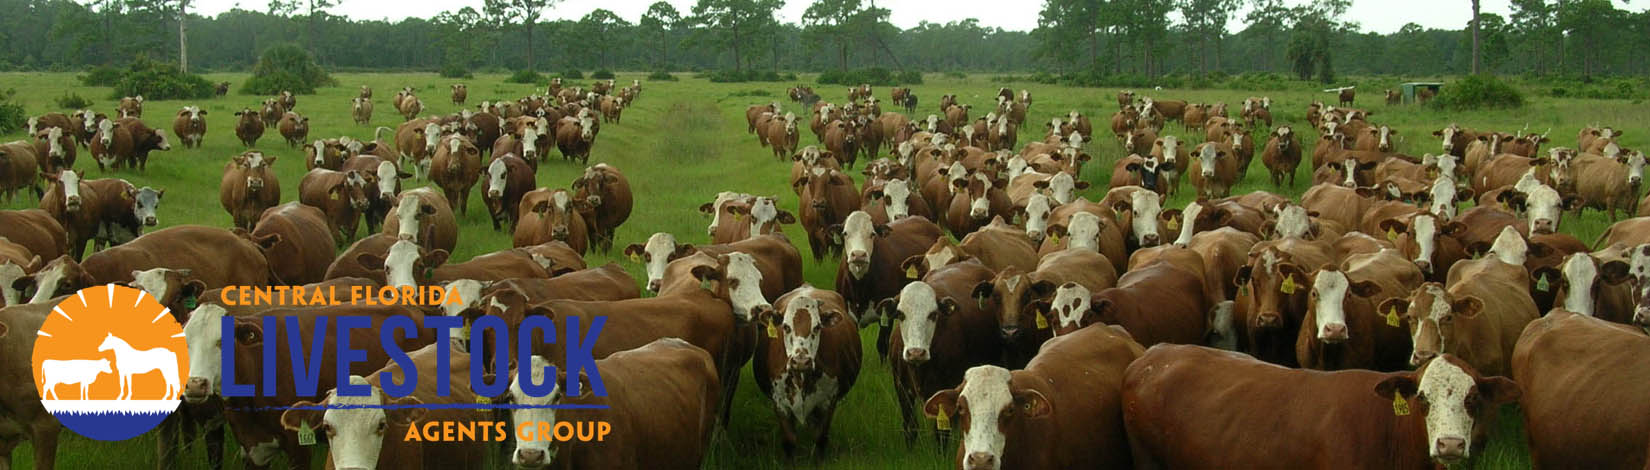 Cattle in Pines Header 28